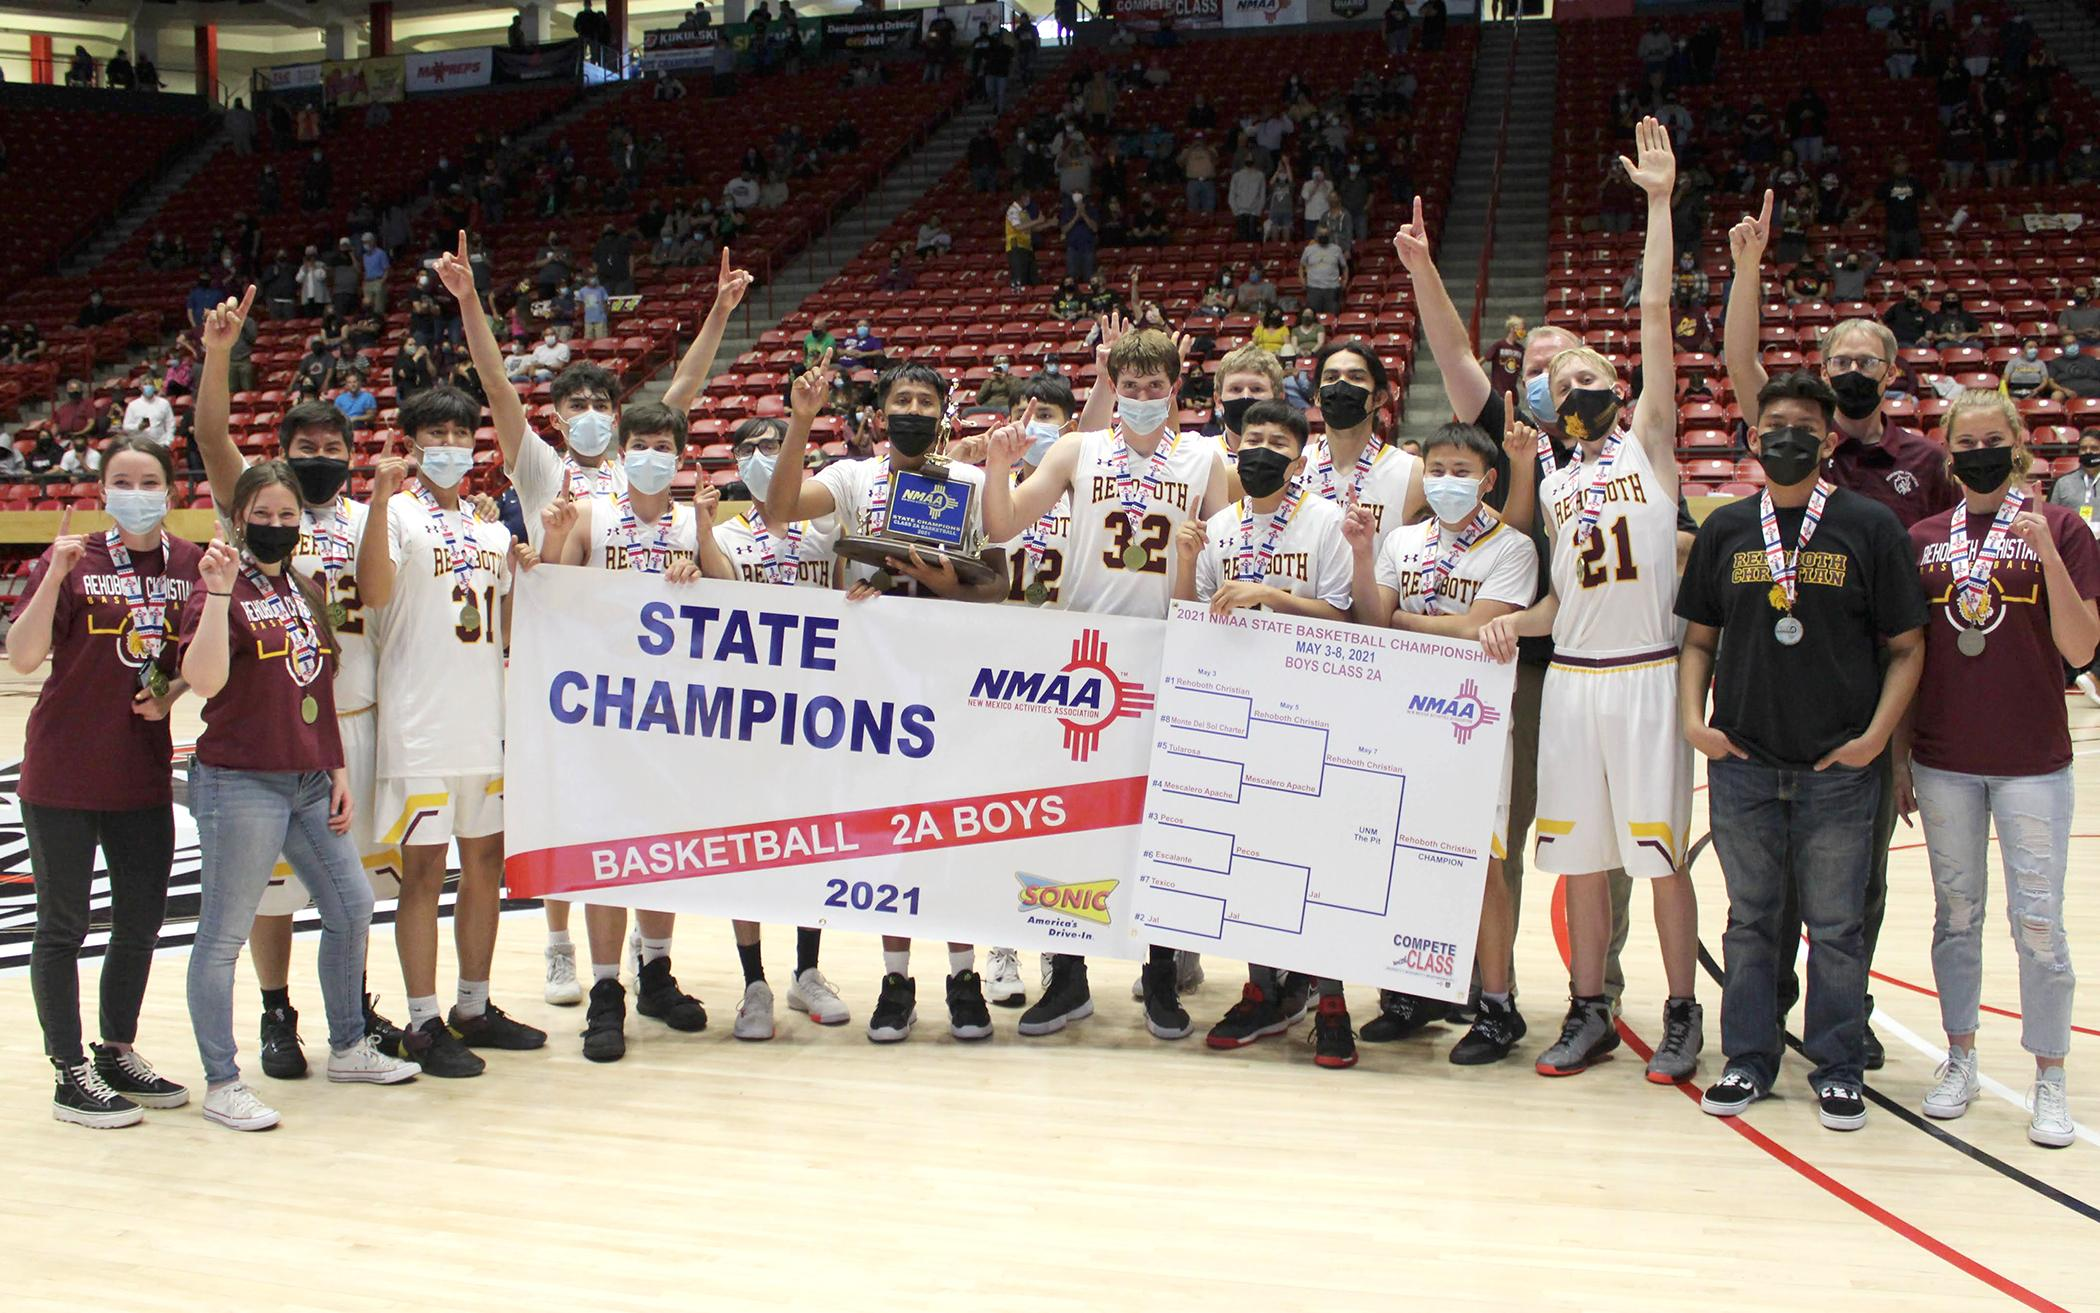 Rehoboth Christian School, State Champs in Boys Basketball